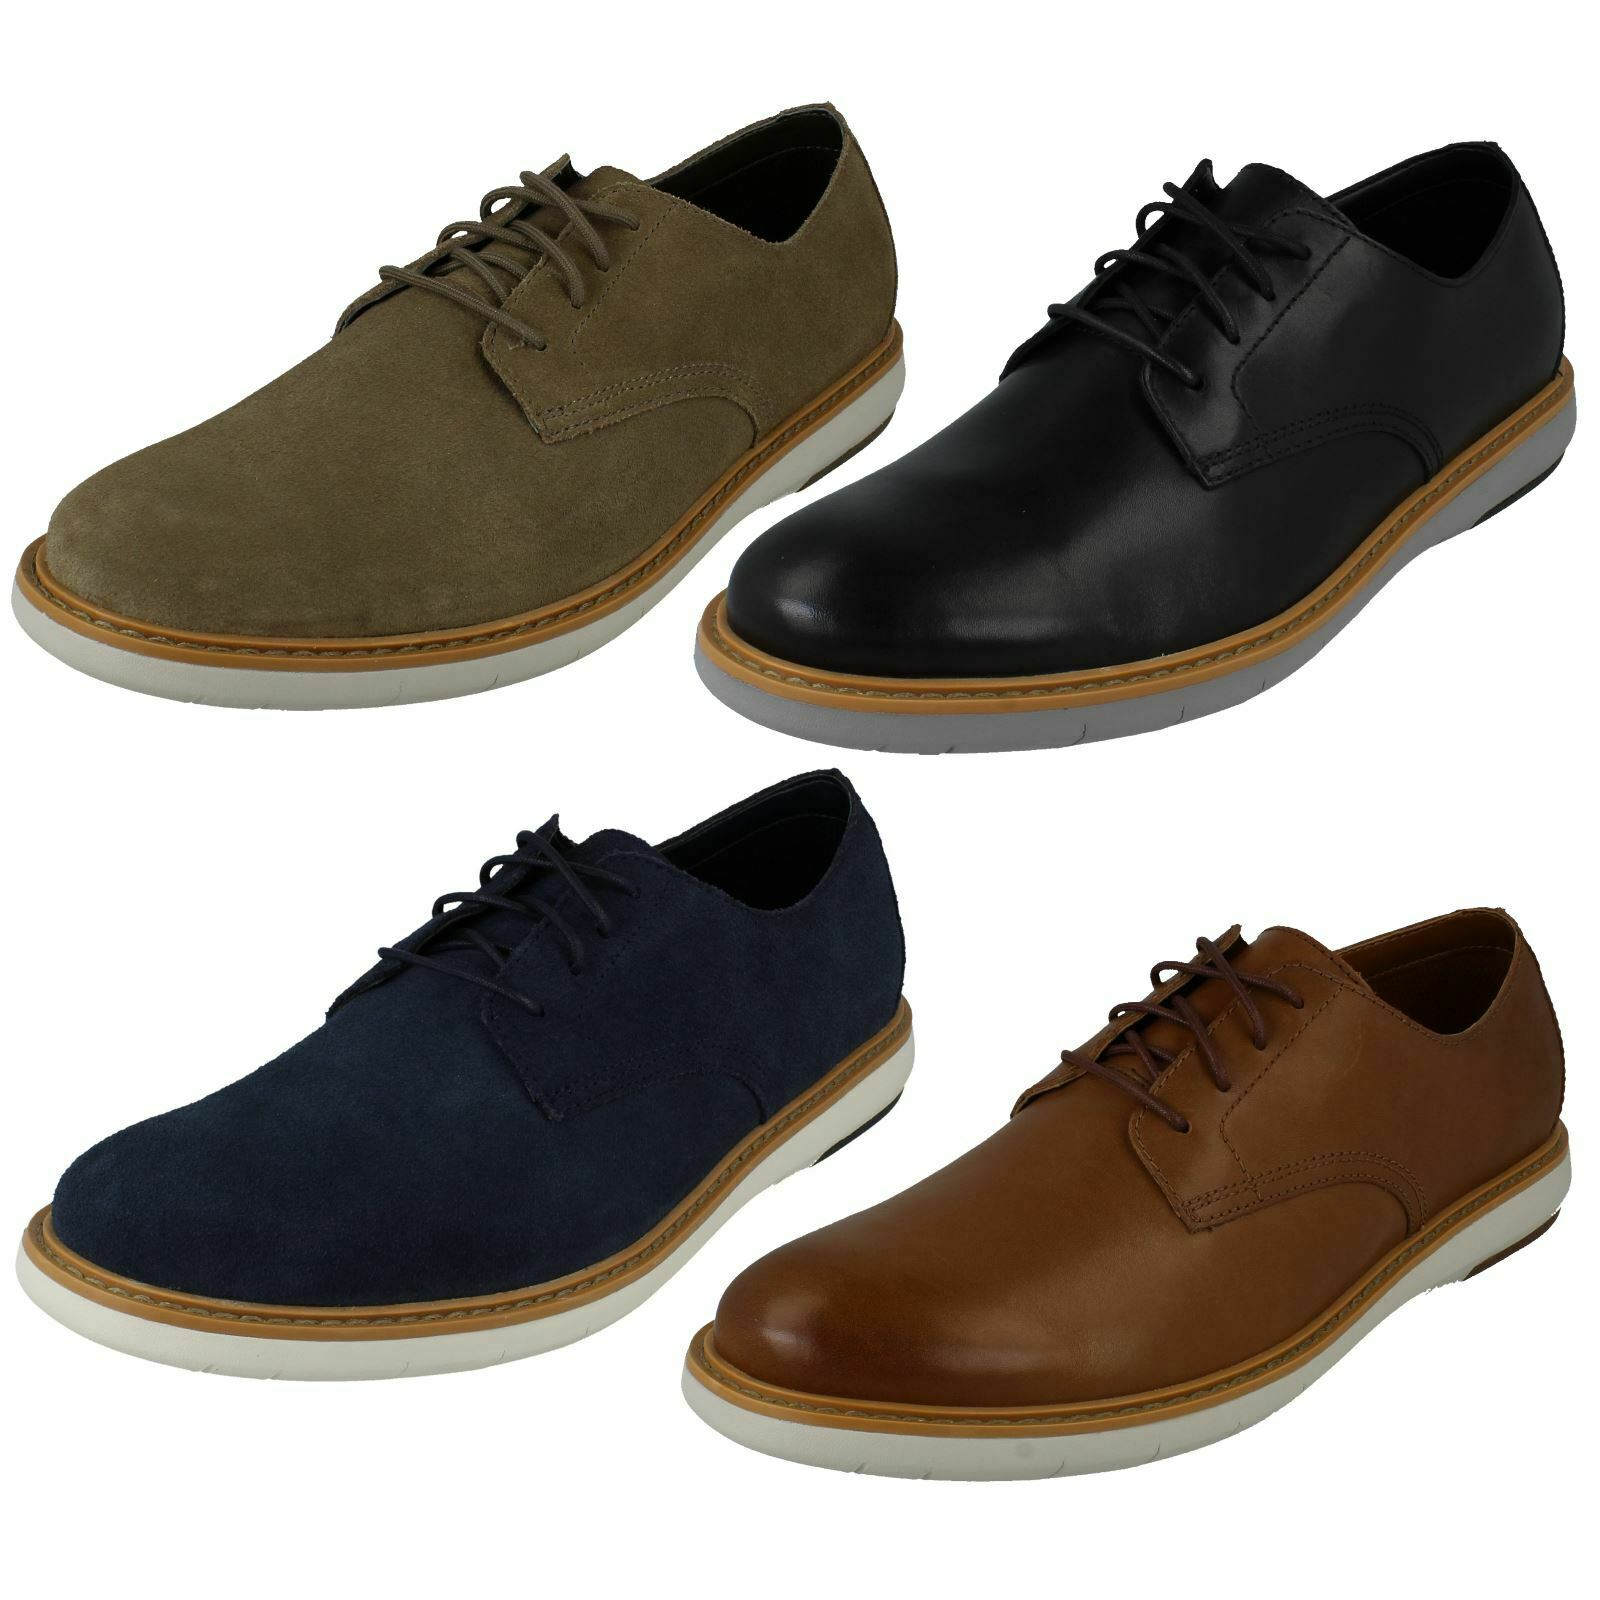 Mens Clarks Casual Lace Up schuhe - Draper Lace